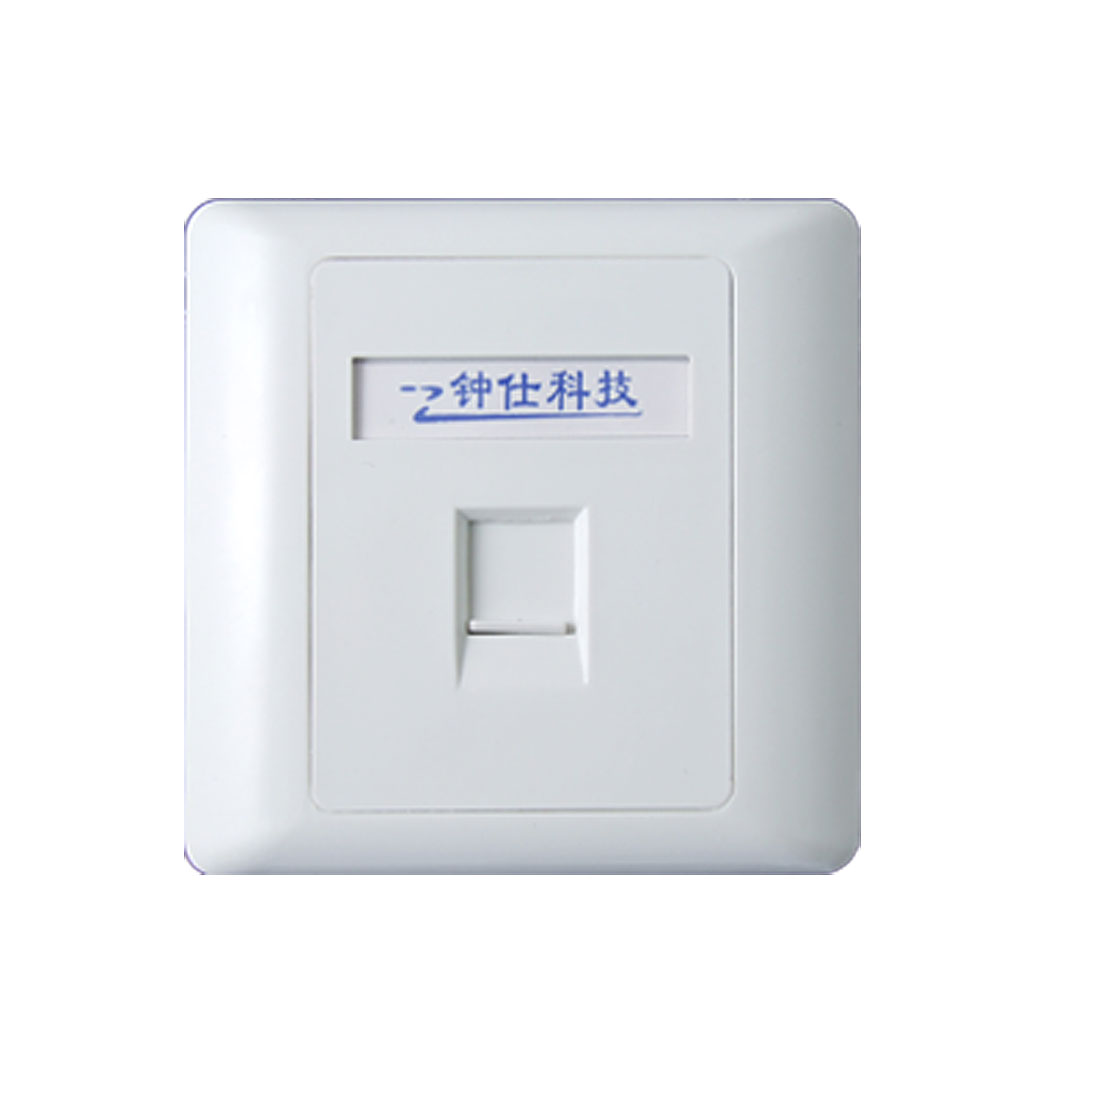 White Plastic RJ11 RJ45 Socket Cover Wall Panel Face Plate